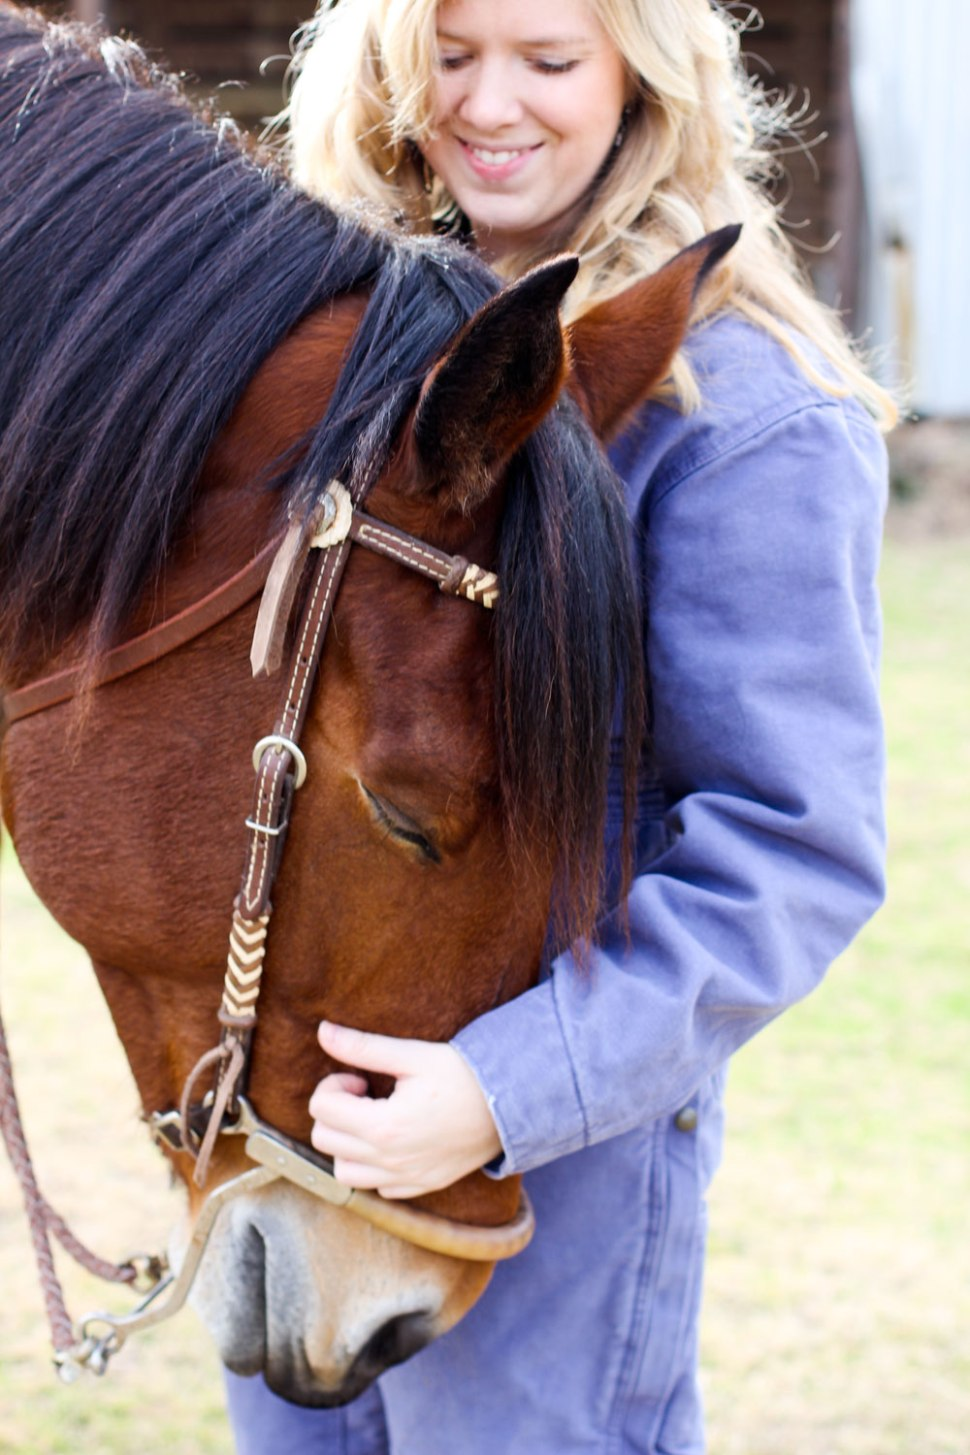 horses and Carhartt